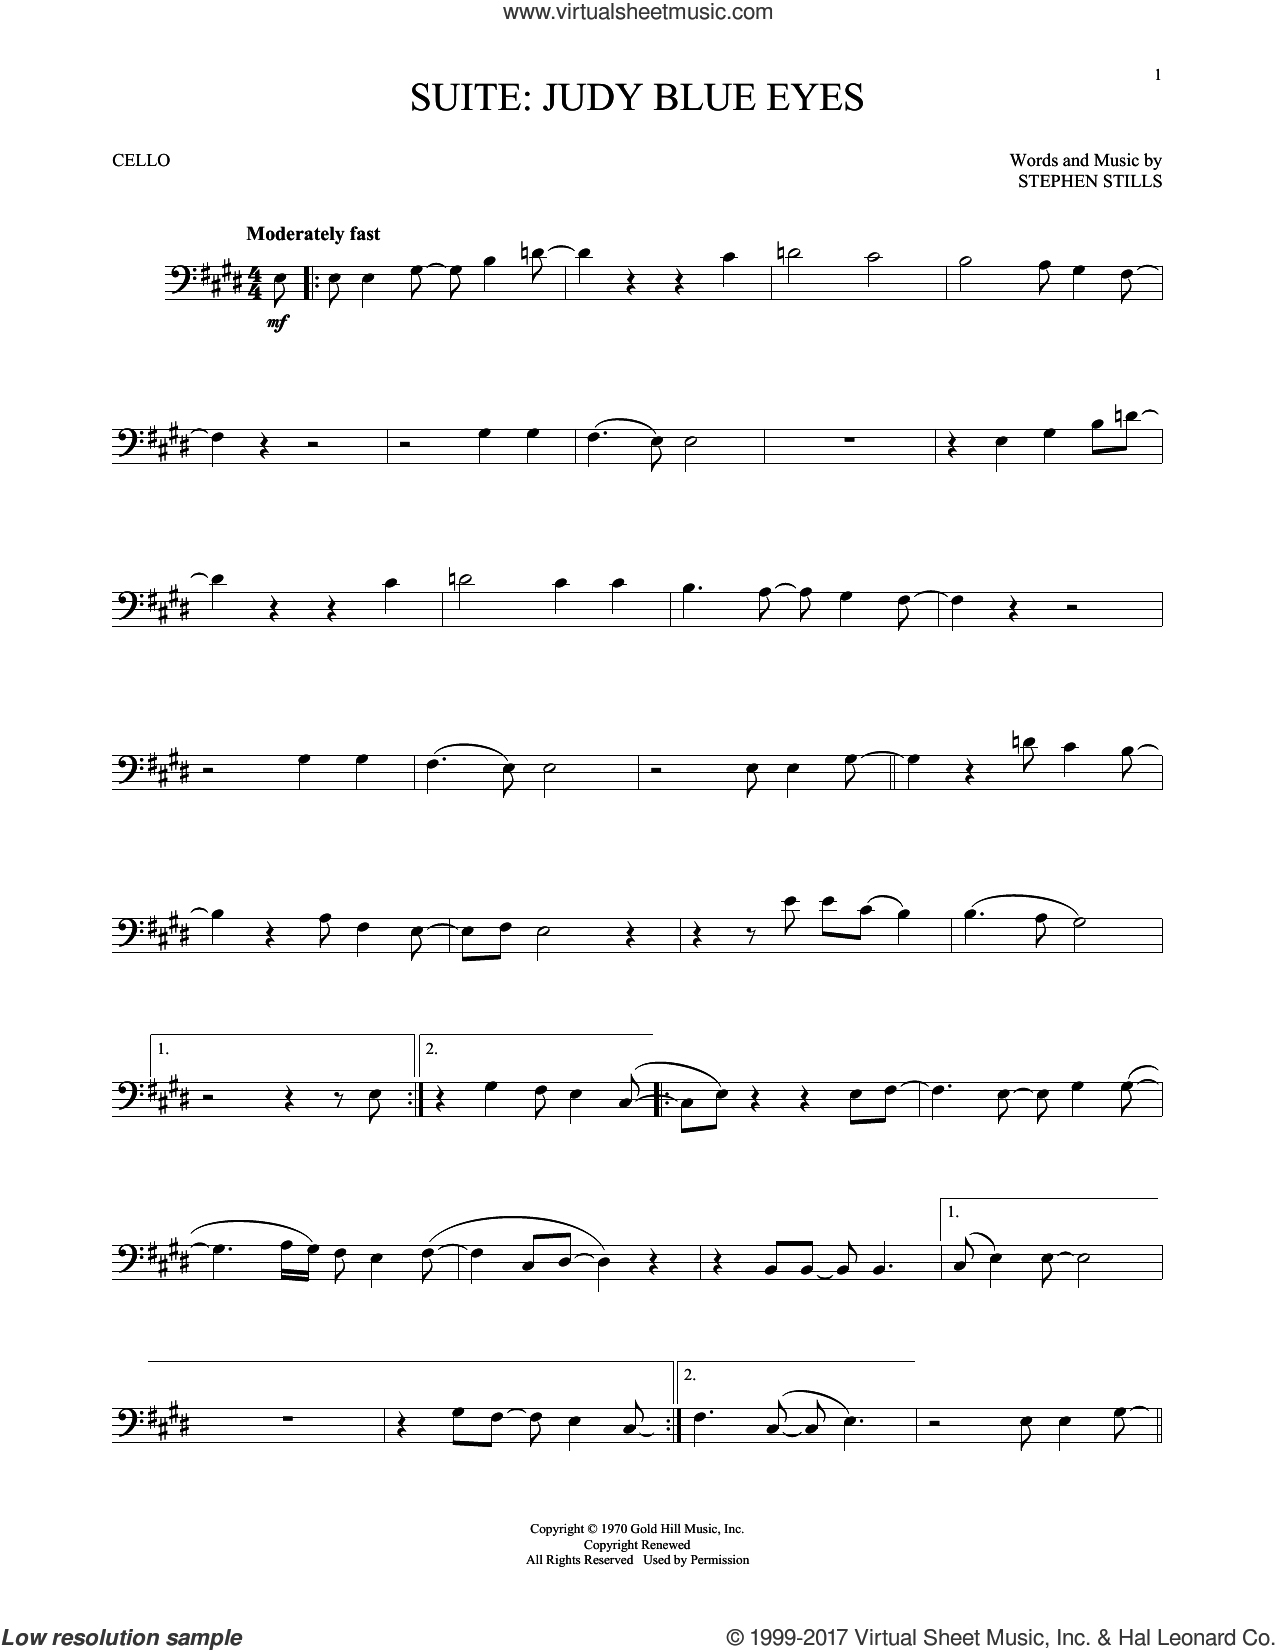 Suite: Judy Blue Eyes sheet music for cello solo by Crosby, Stills & Nash and Stephen Stills, intermediate skill level